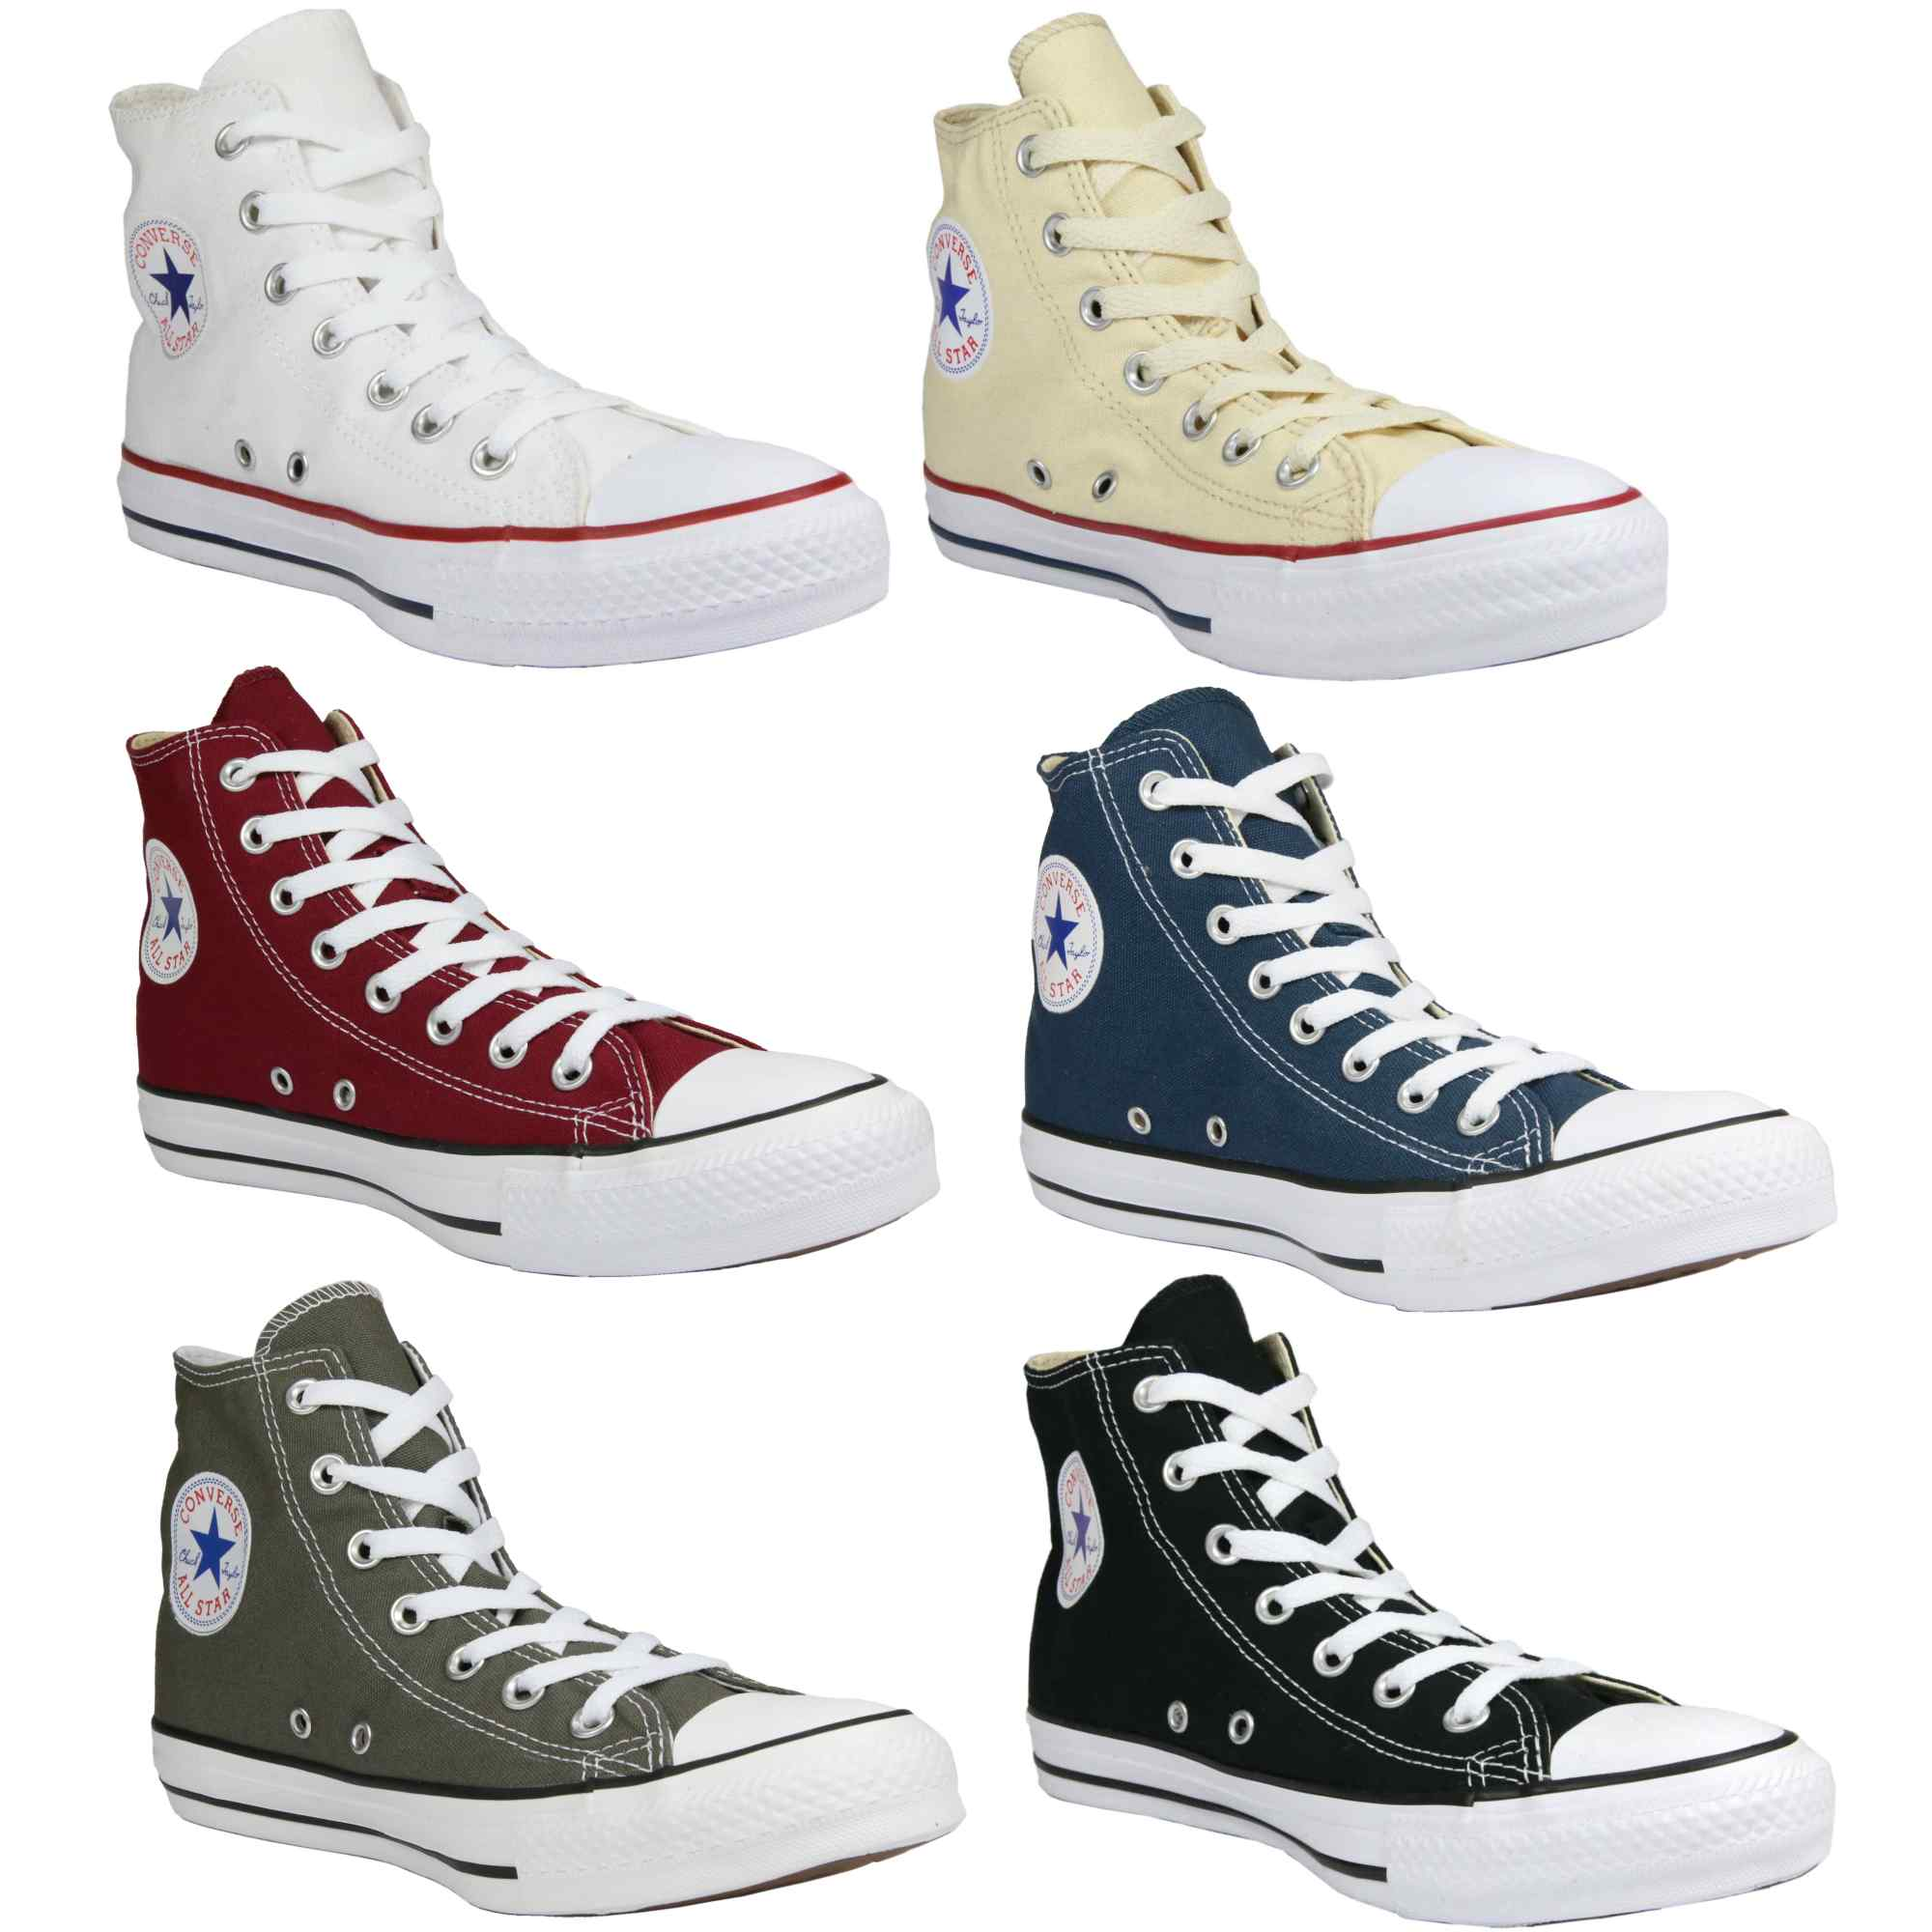 Converse Chuck Taylor All Star Hi Schuhe High Top Sneaker